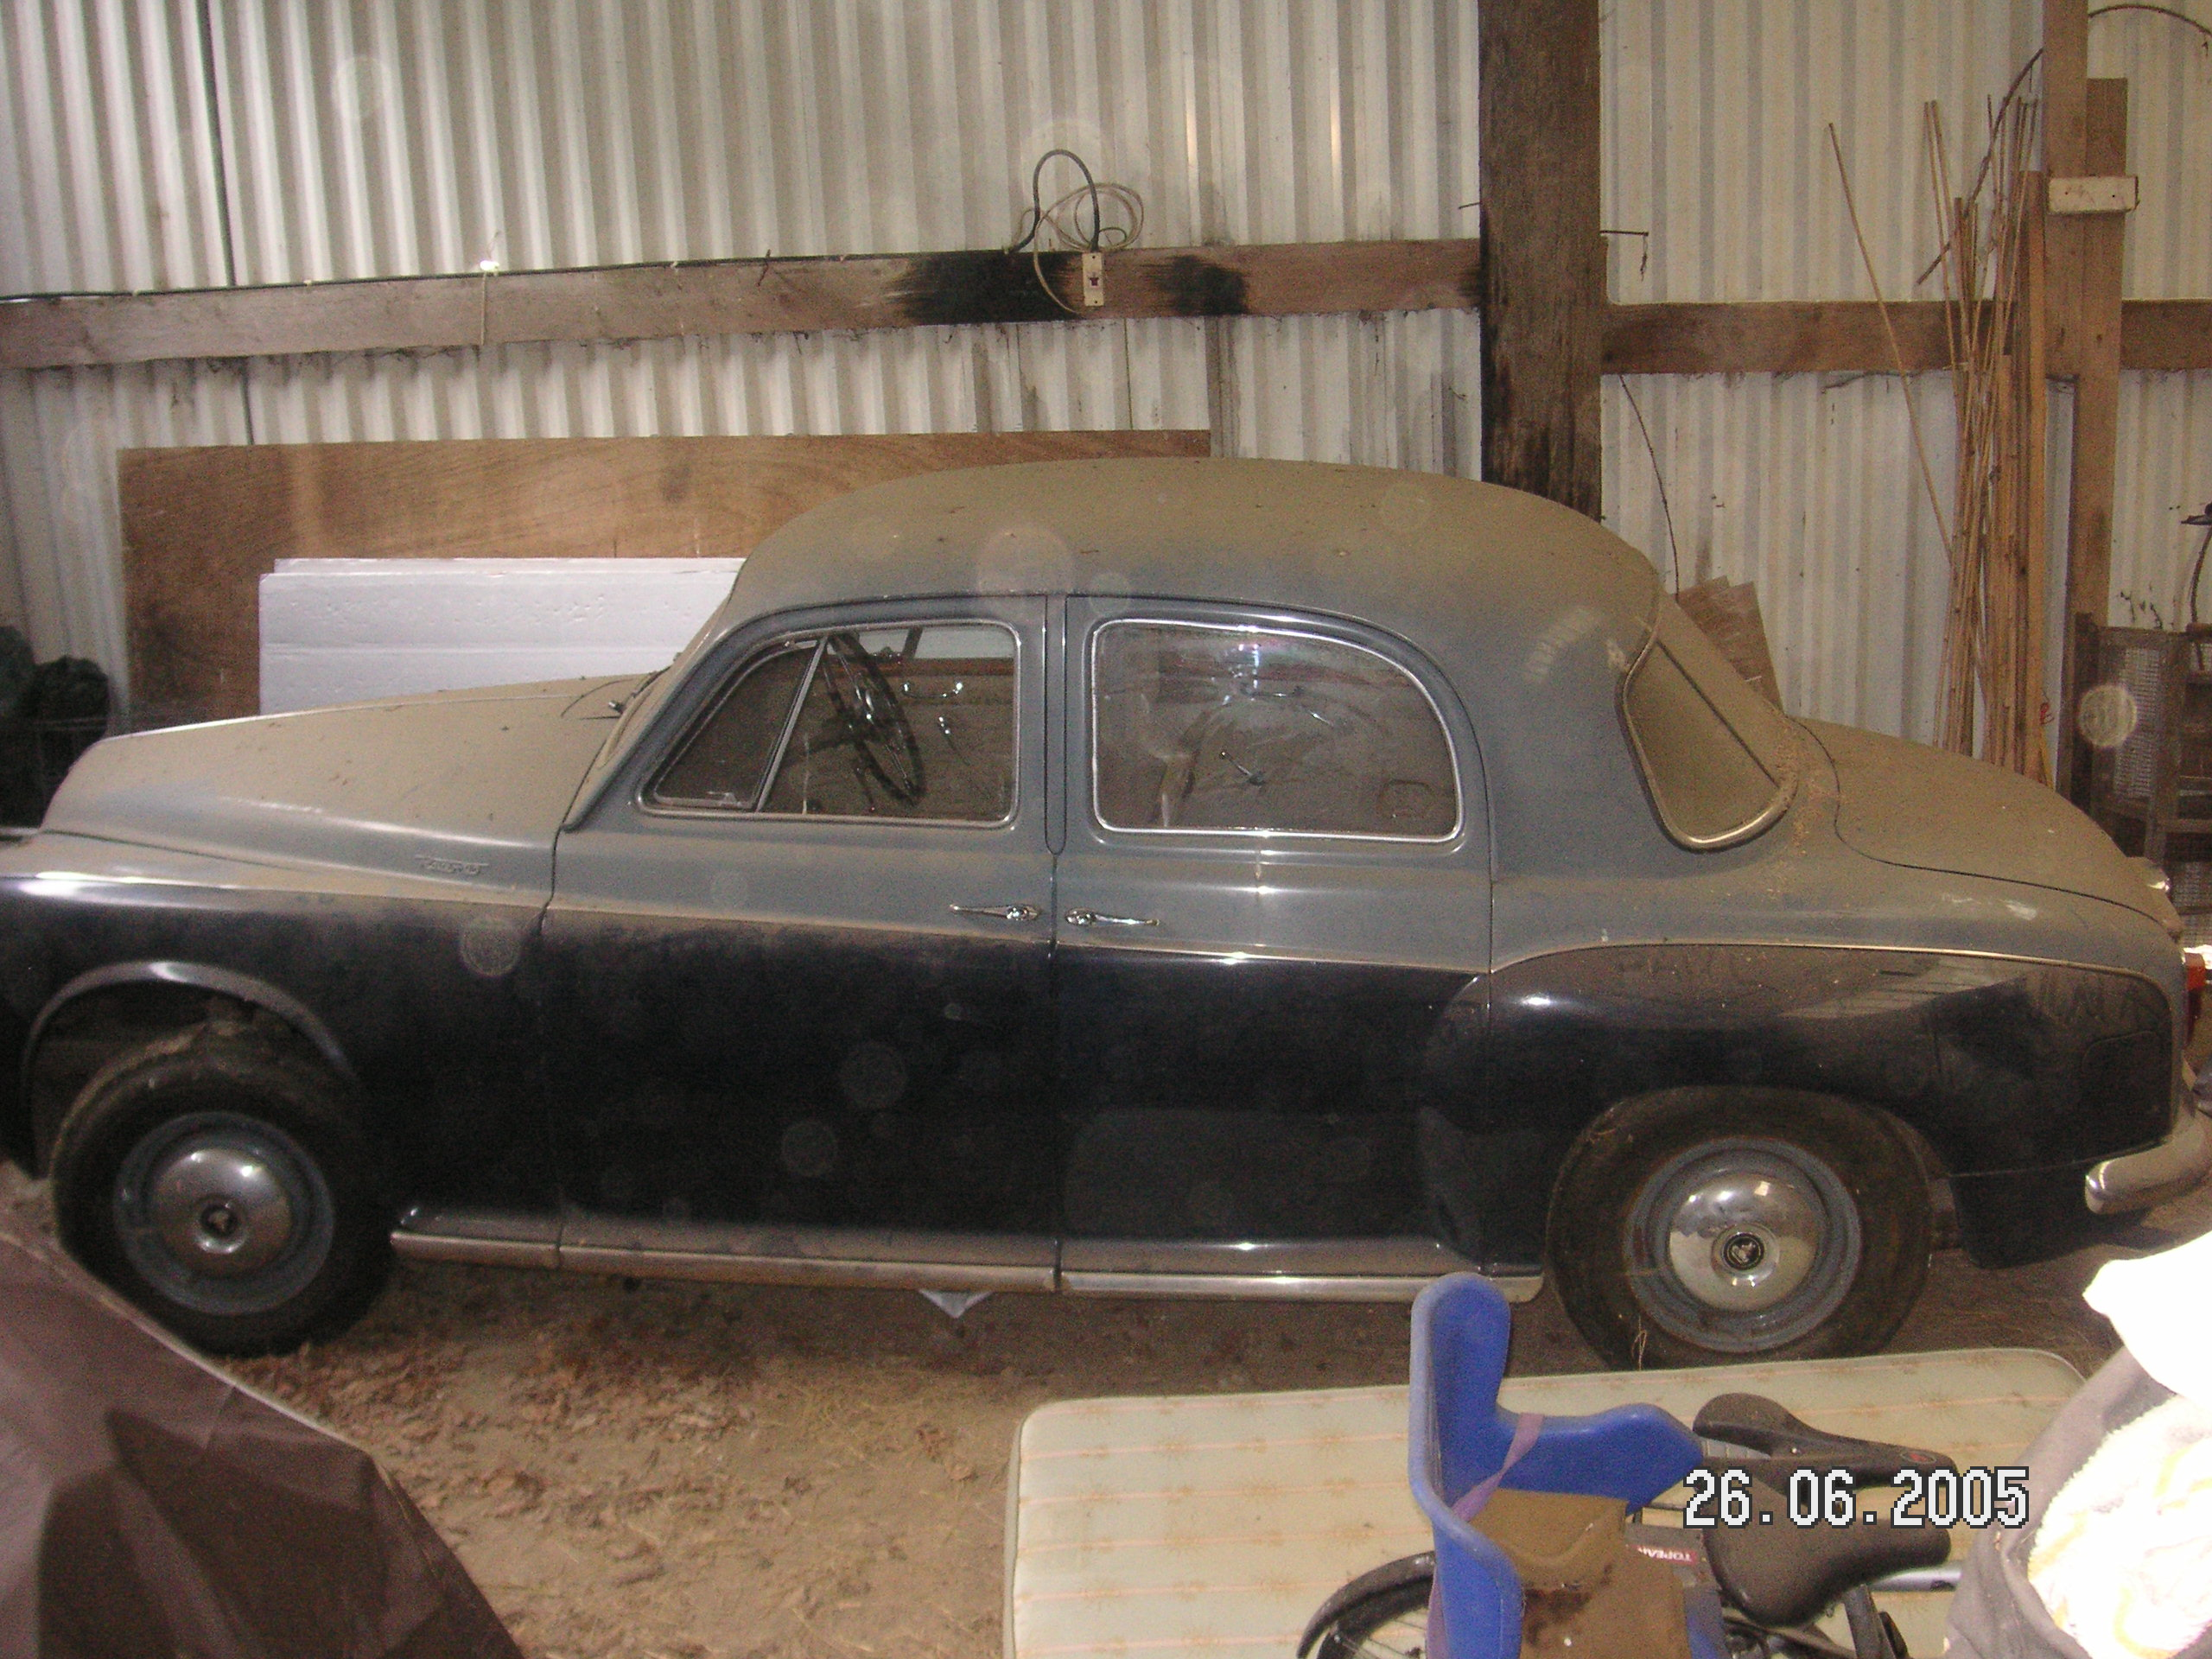 Home Instead Tony O'Flaherty's classic 1962 Rover P4 car in 2005